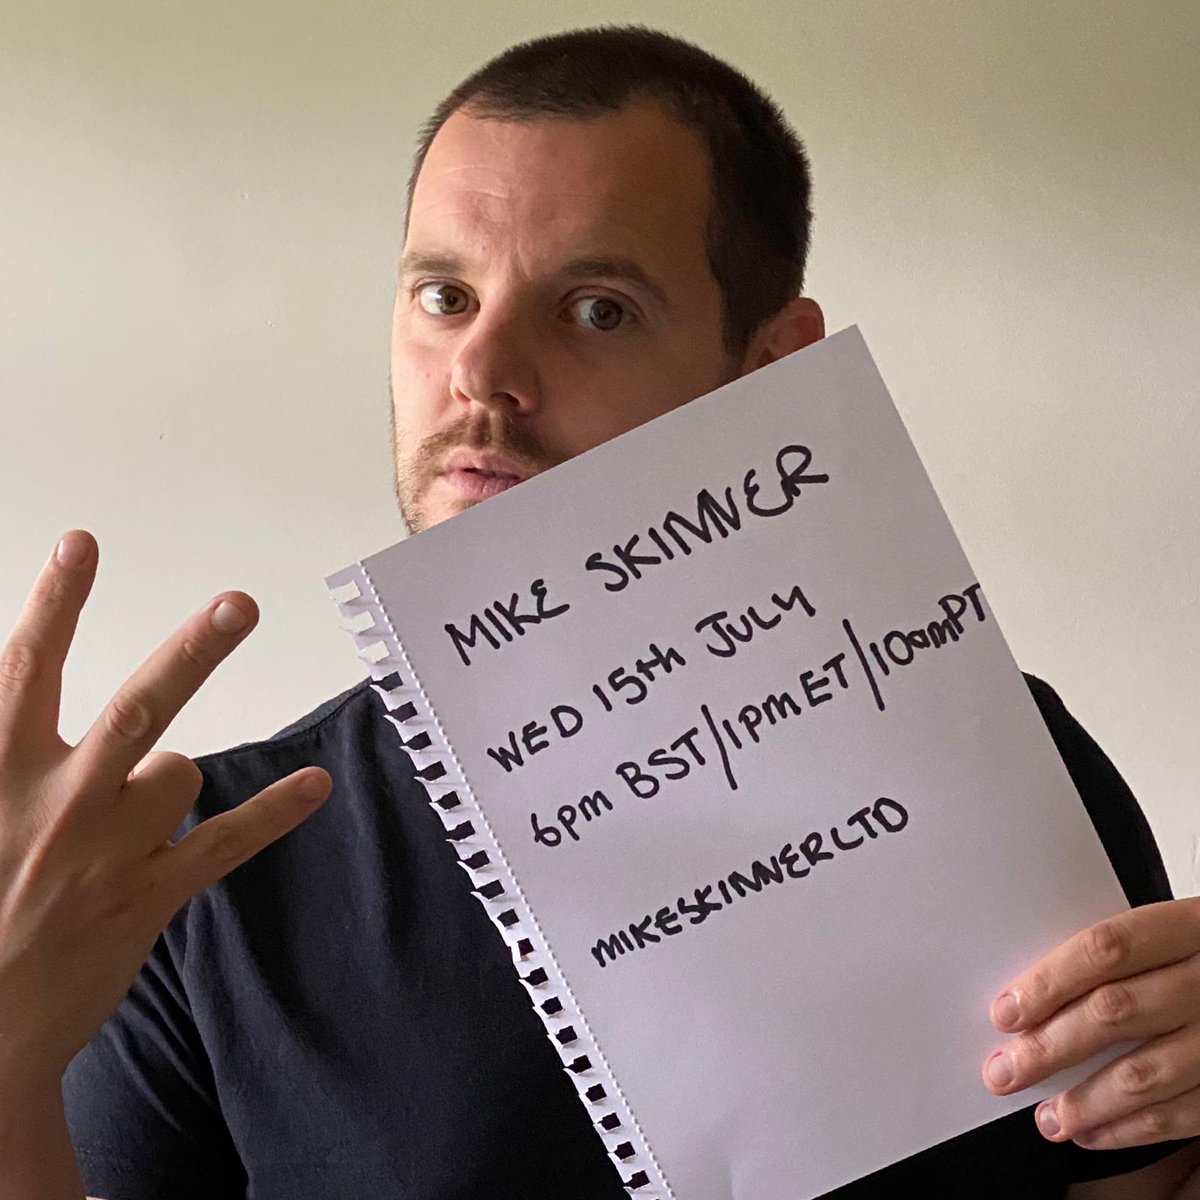 Ask me anything on @reddit Reddit: r/indieheads today at 6pm BST/1pm ET/10am PT. @indie_heads